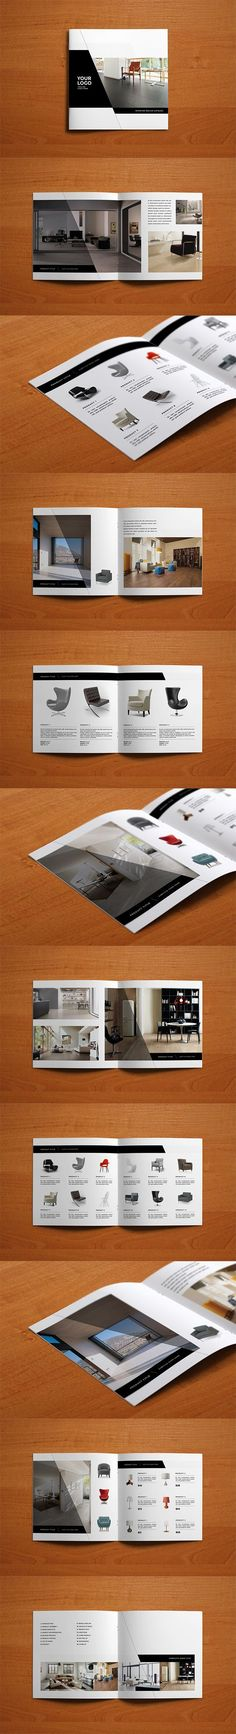 Minimal Interior Design Catalog Catalog Brochure Template by AbraDesign. Graphic Design Brochure, Brochure Layout, Branding Design, Logo Design, Brochure Template, Web Design, Layout Design, Design Editorial, Editorial Layout